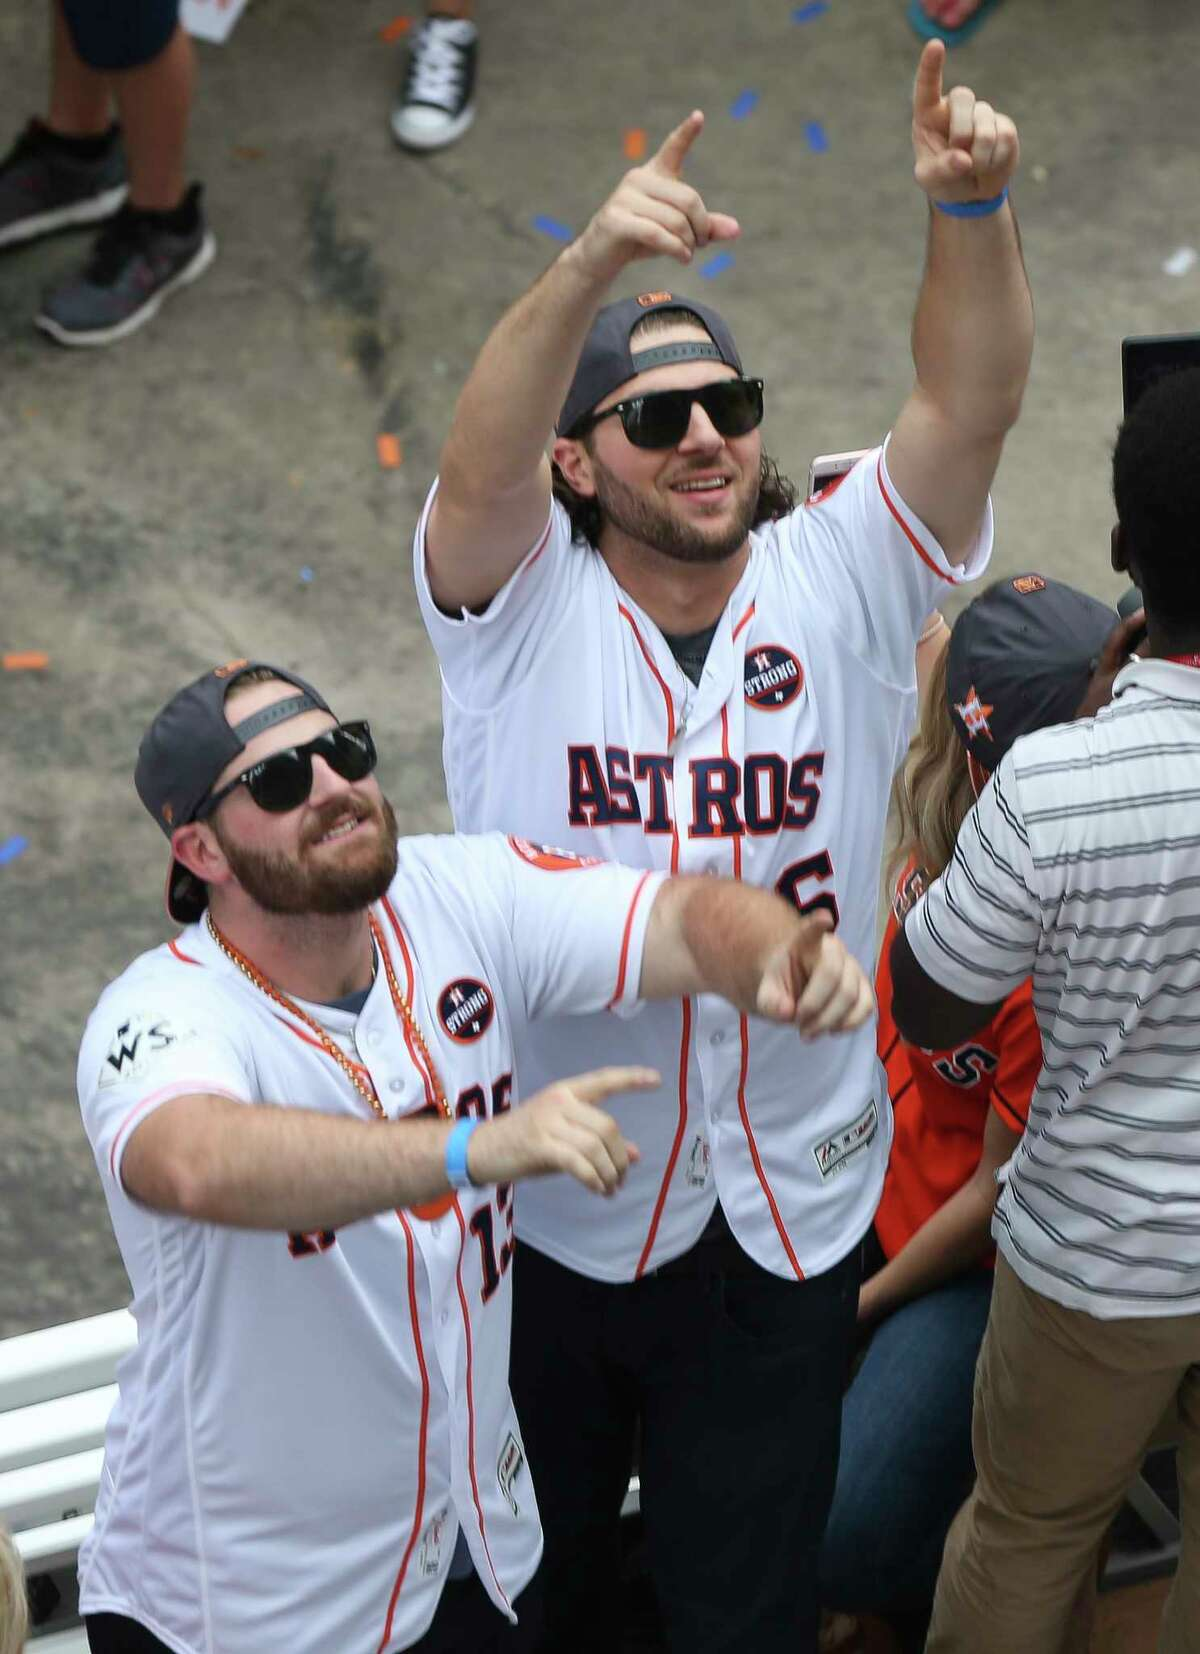 Houston Astros players Tyler White, left, and Jake Marisnick cheer the crowd during World Series Parade at the intersection of Milan and Polk Streets Friday, Nov. 3, 2017, in Houston.